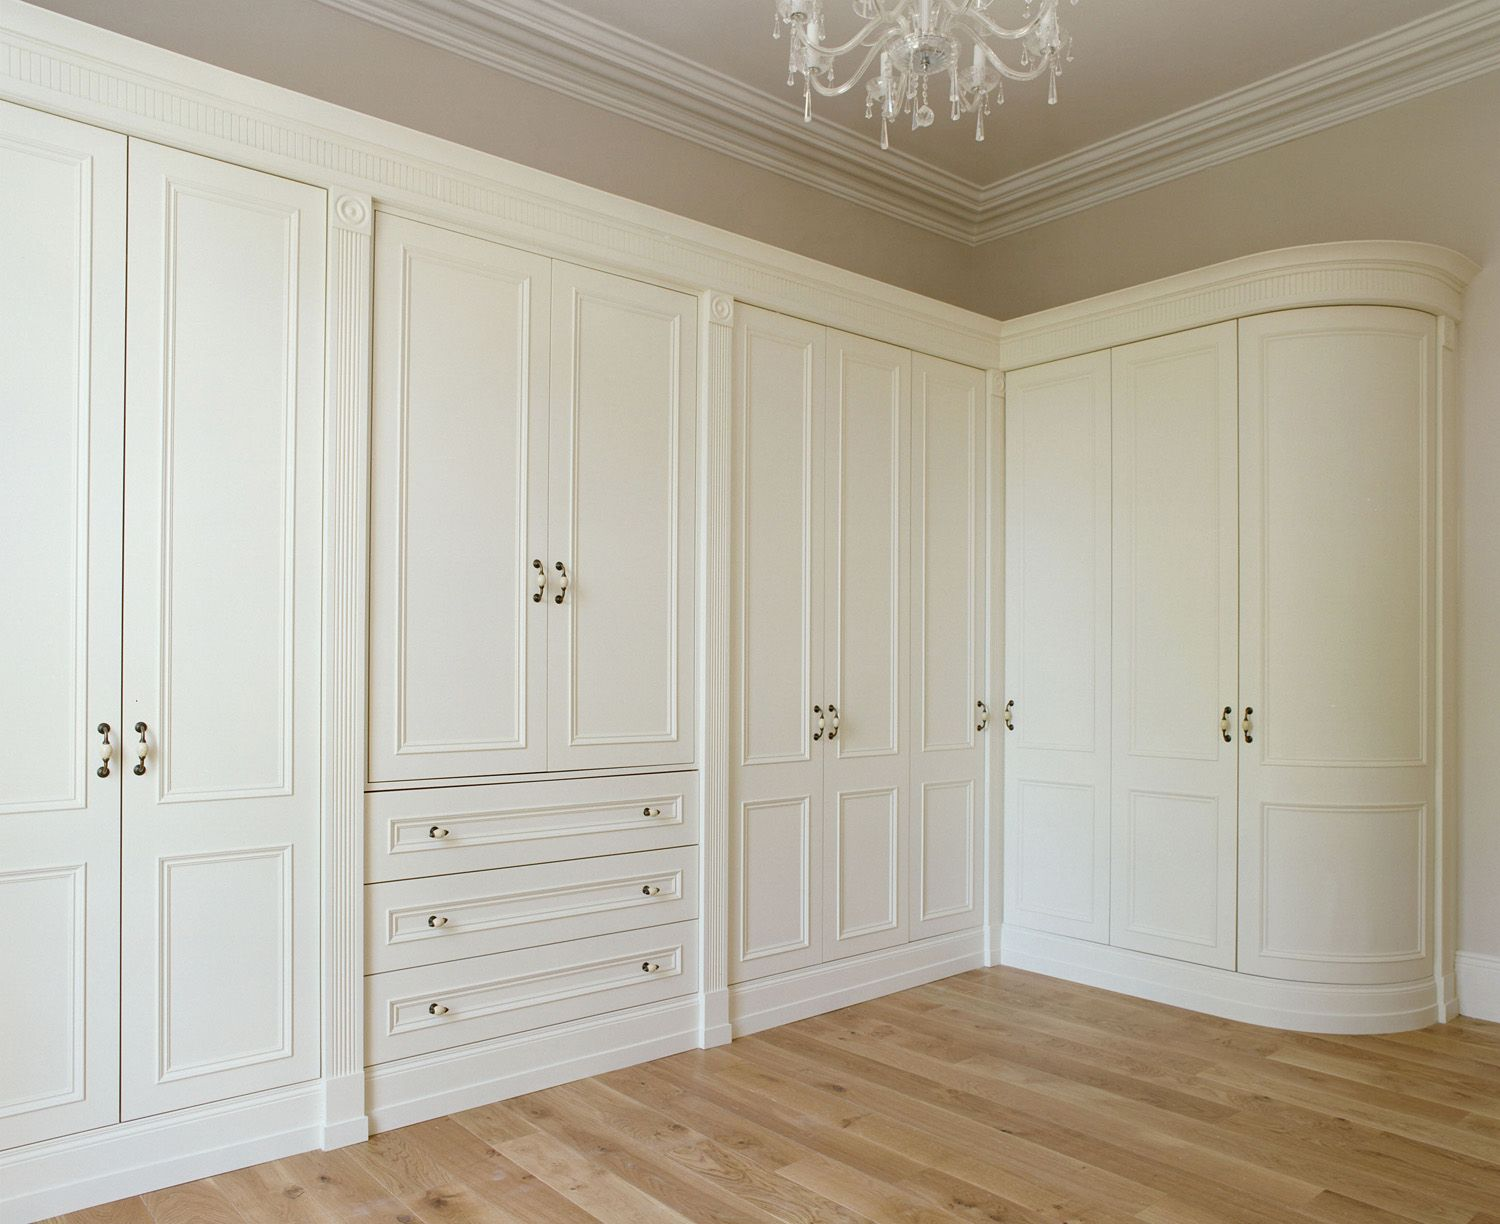 Built In Wardrobe Designs For Bedroom Prepossessing Newcastle Design Bedroom Furniture Fitted Wardrobes Bedroom Decorating Design